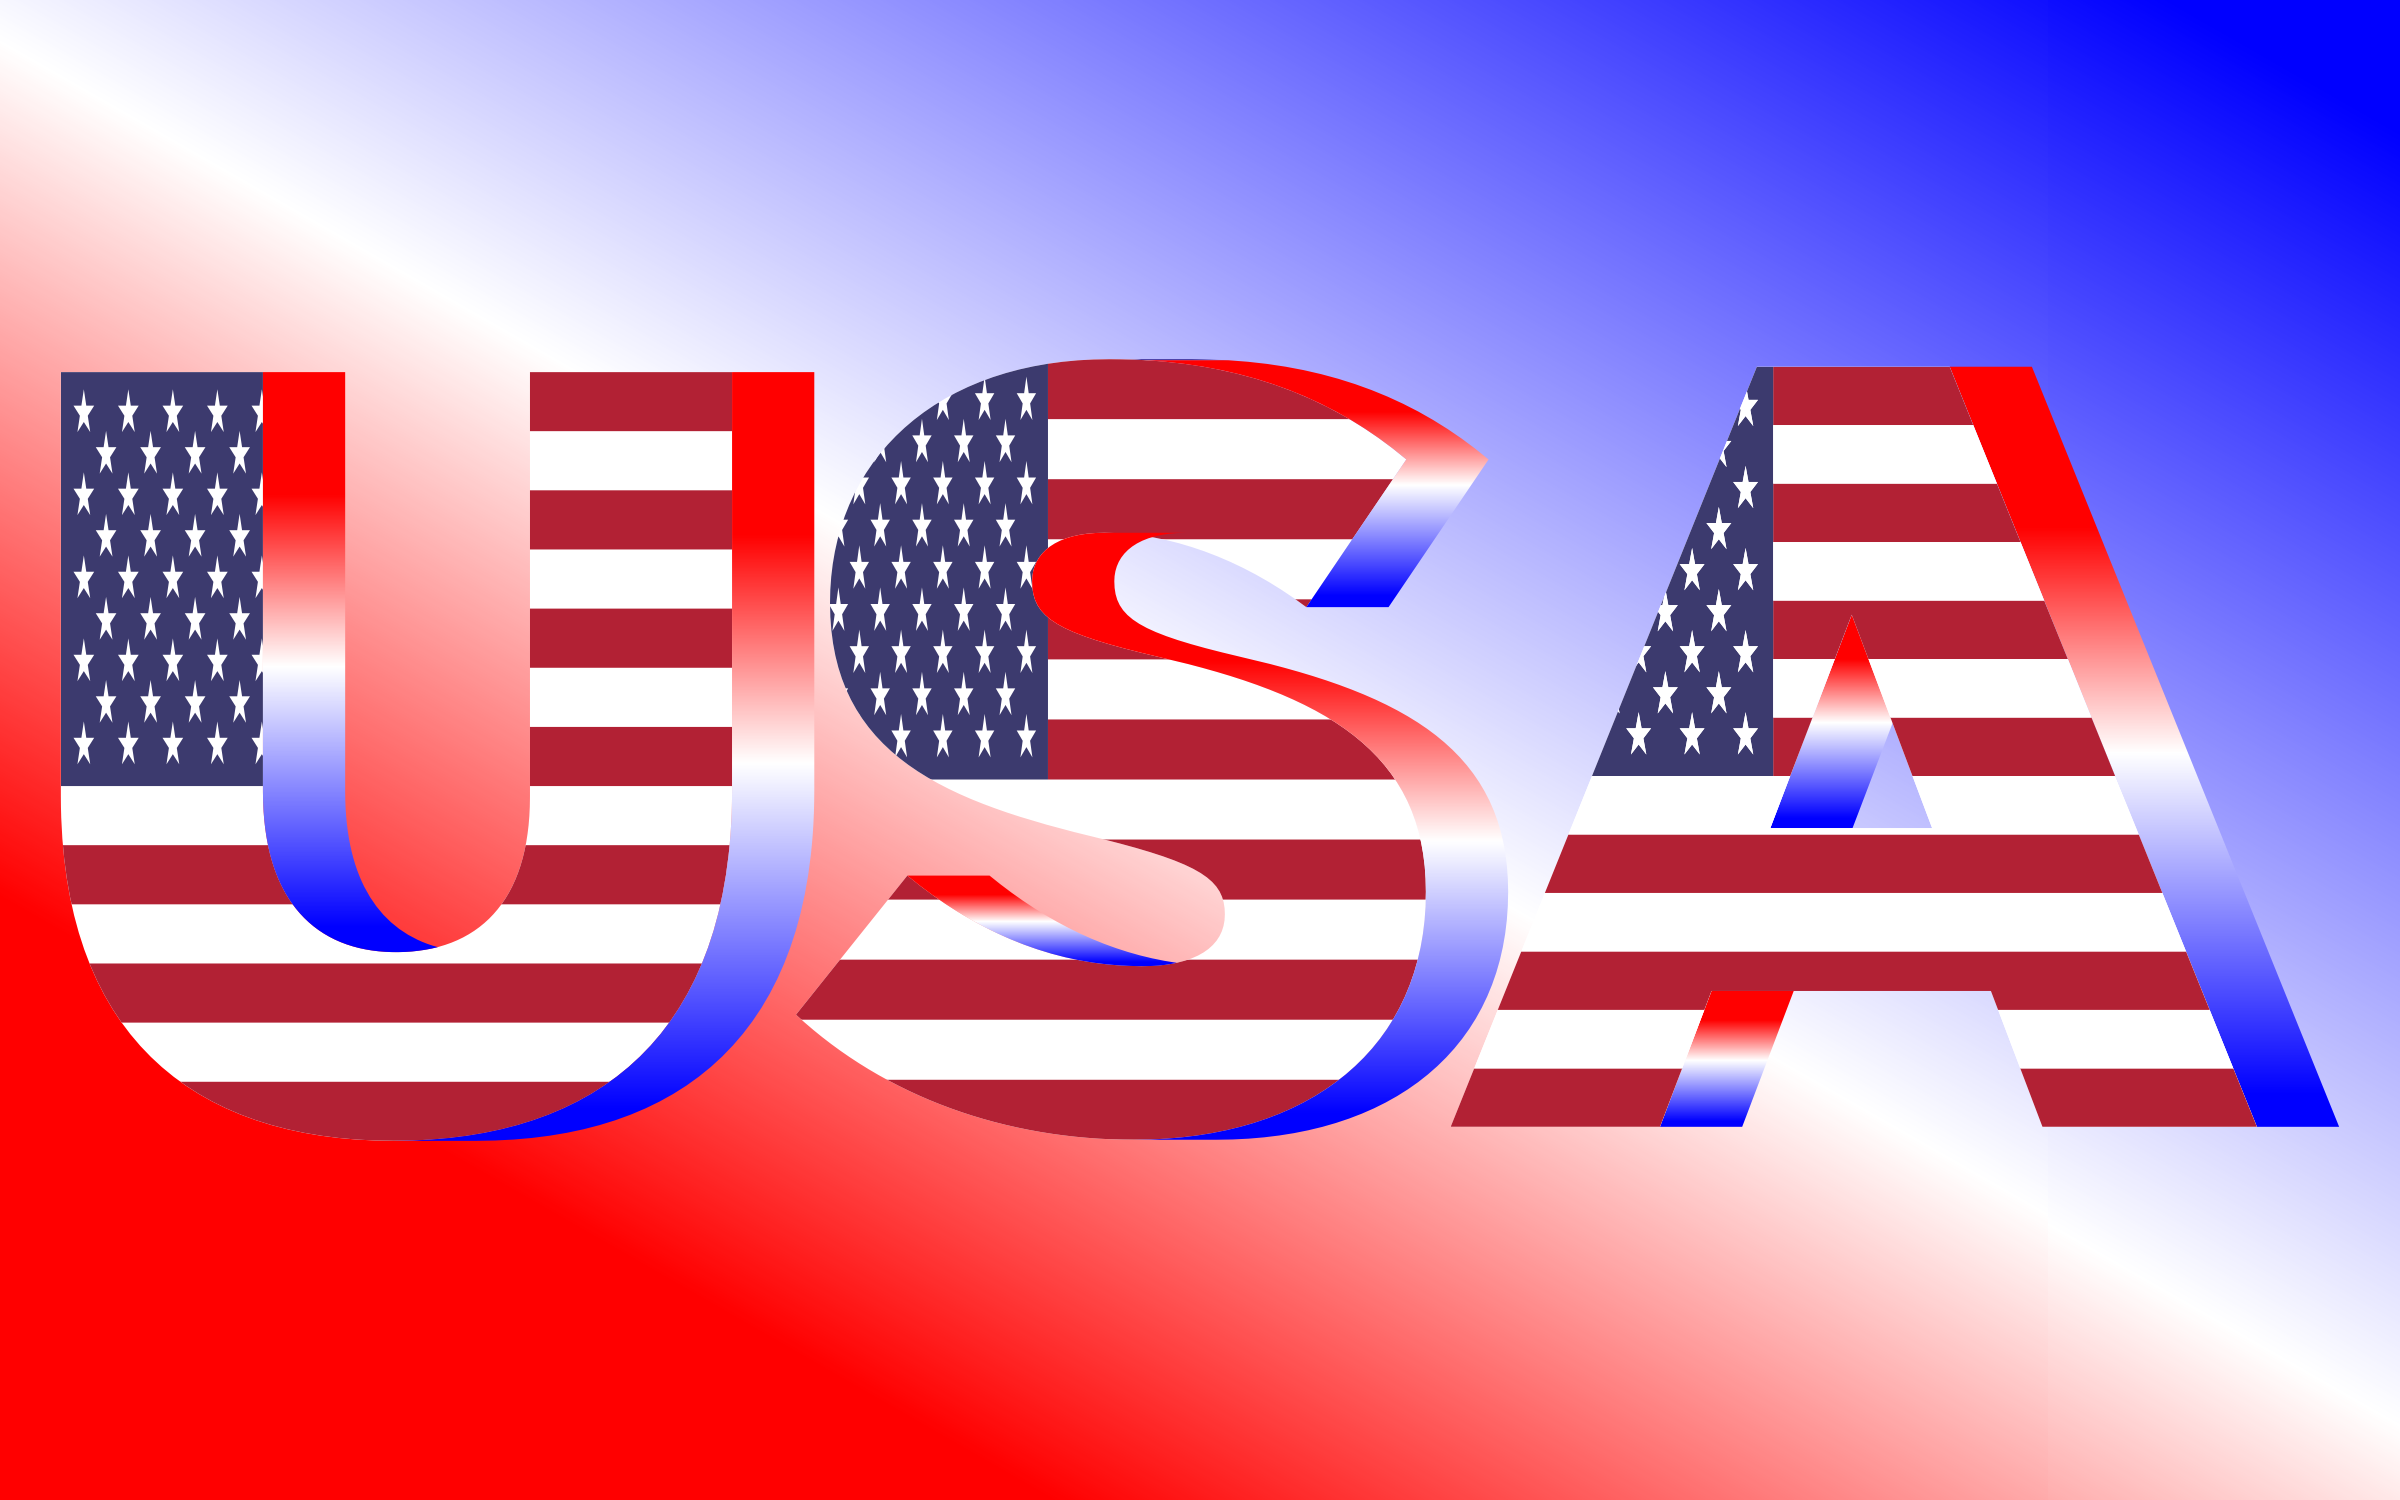 USA Flag Typography Red White And Blue by GDJ